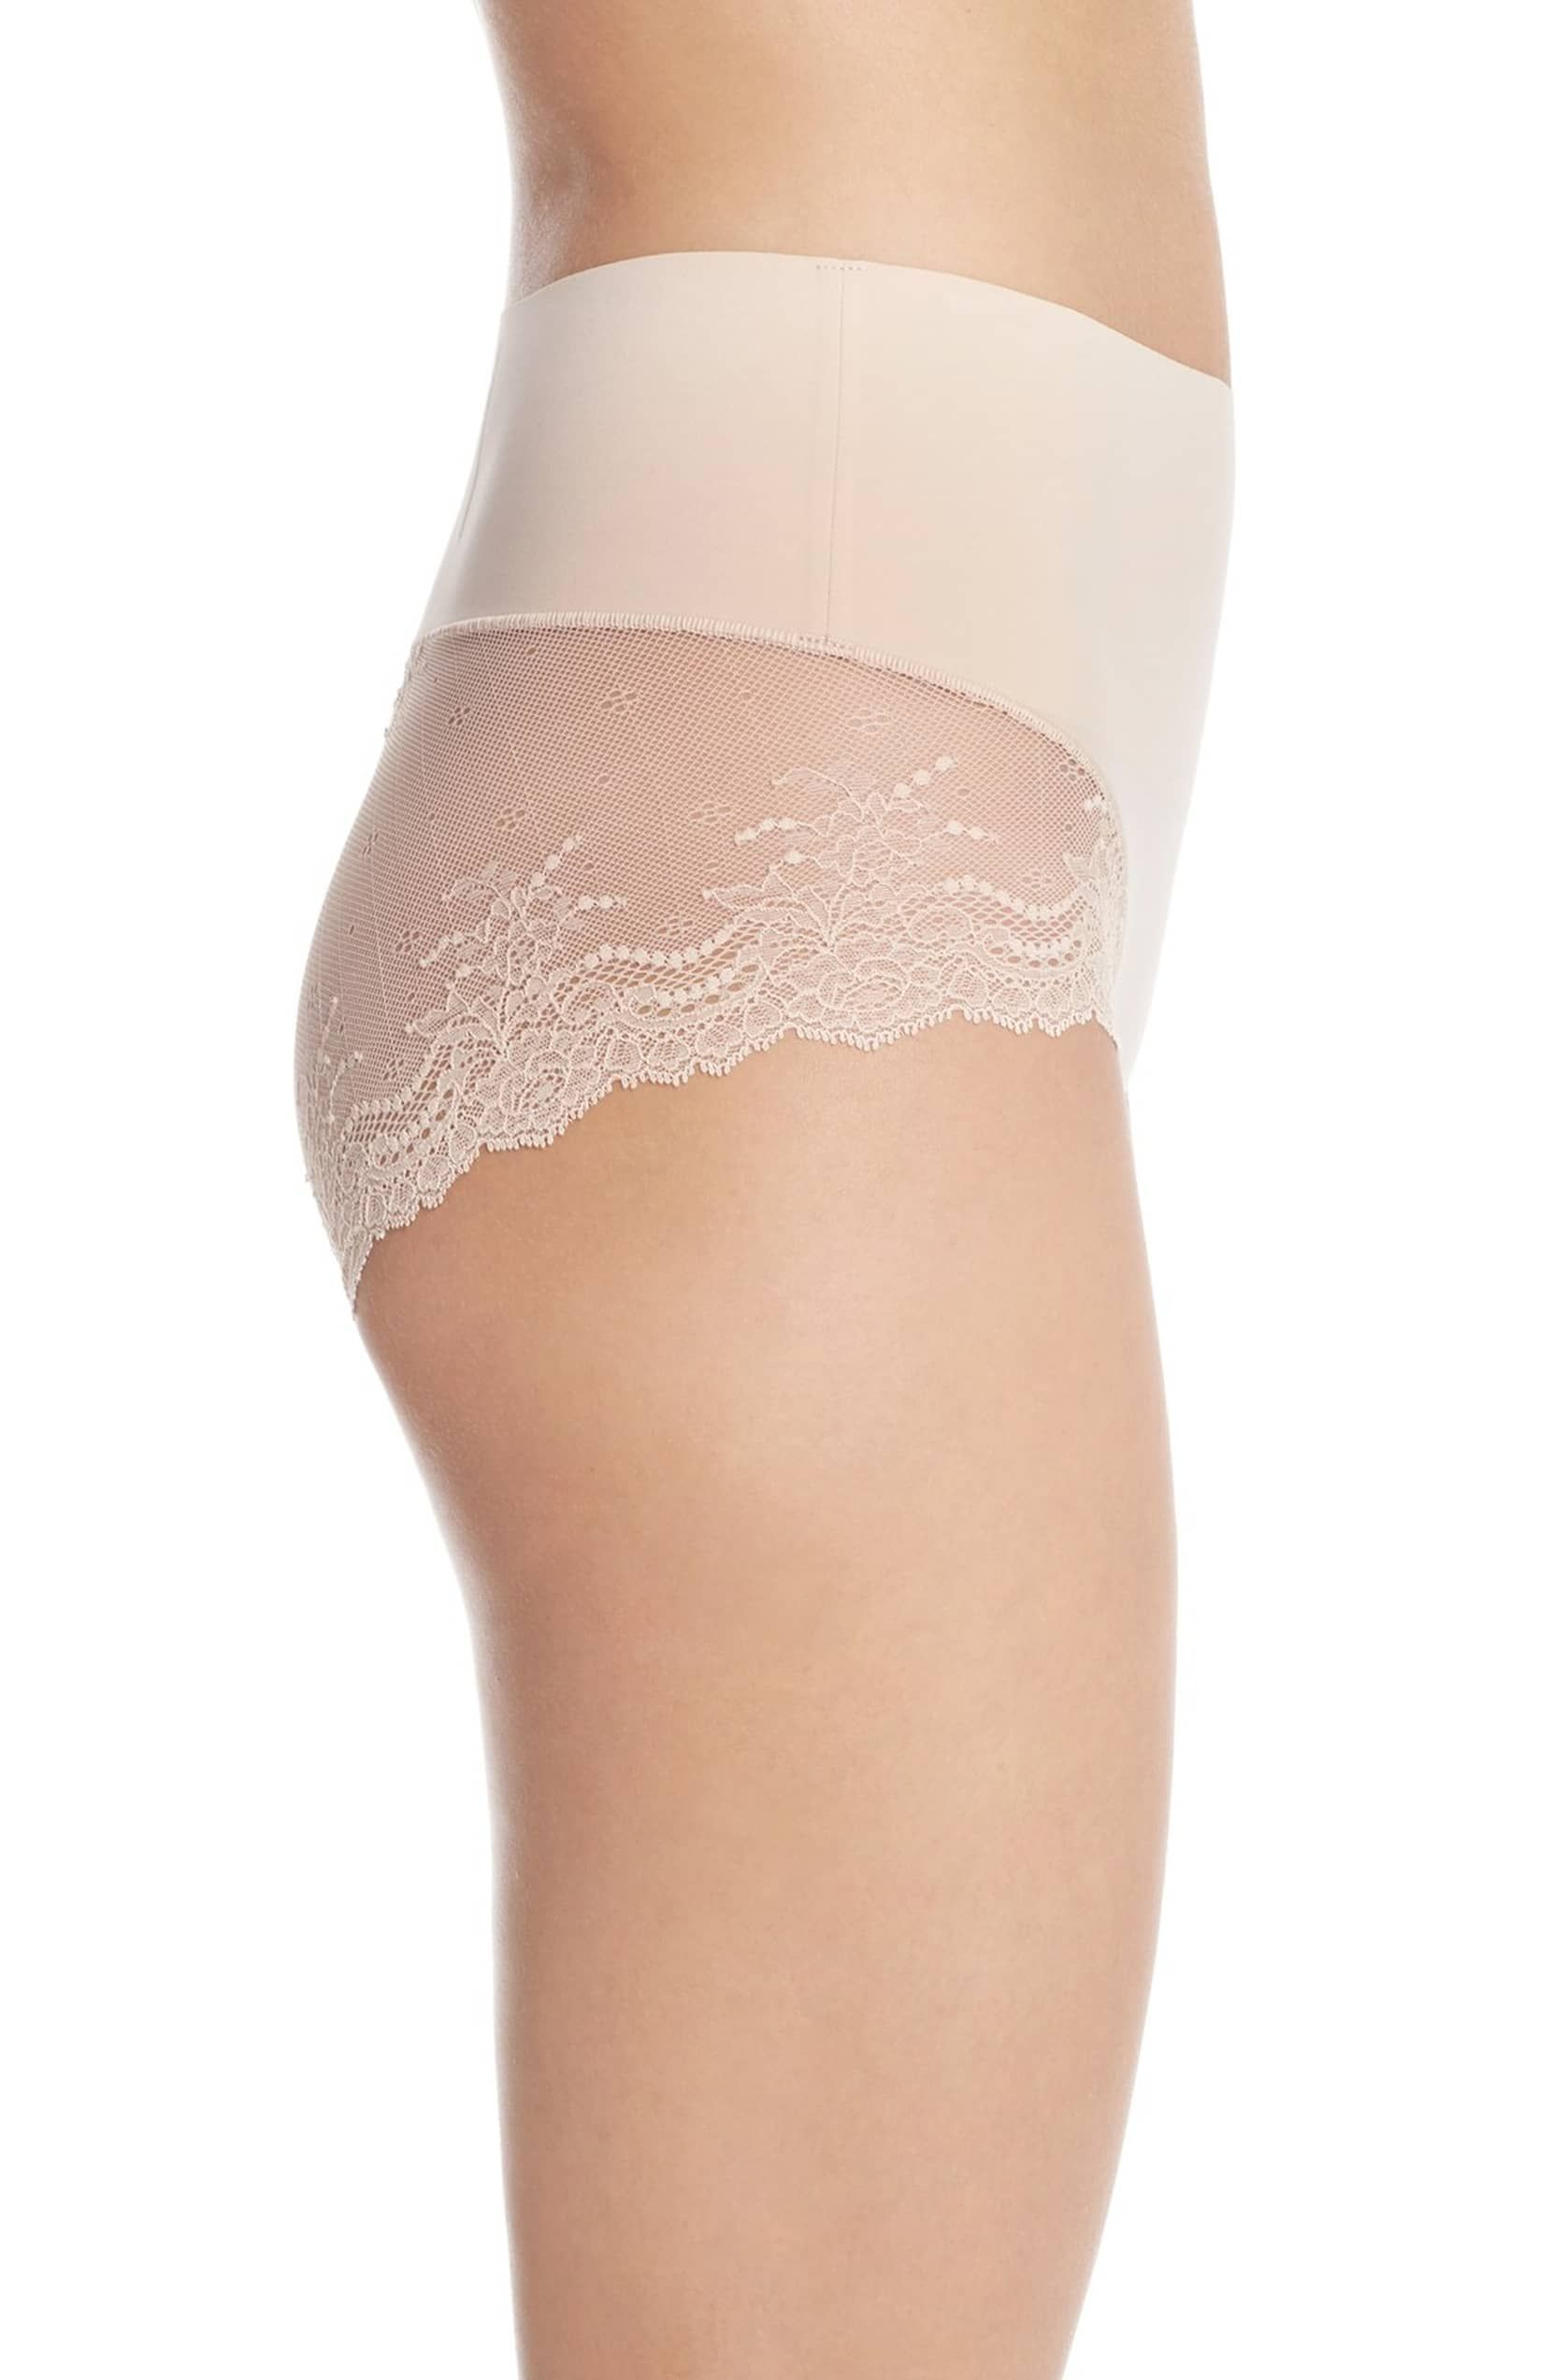 34f1c51730f5 Undie-tectable Lace Hipster Panties, Alternate, color, SOFT NUDE Side View  Knickers, Undies (1660x2546) ...